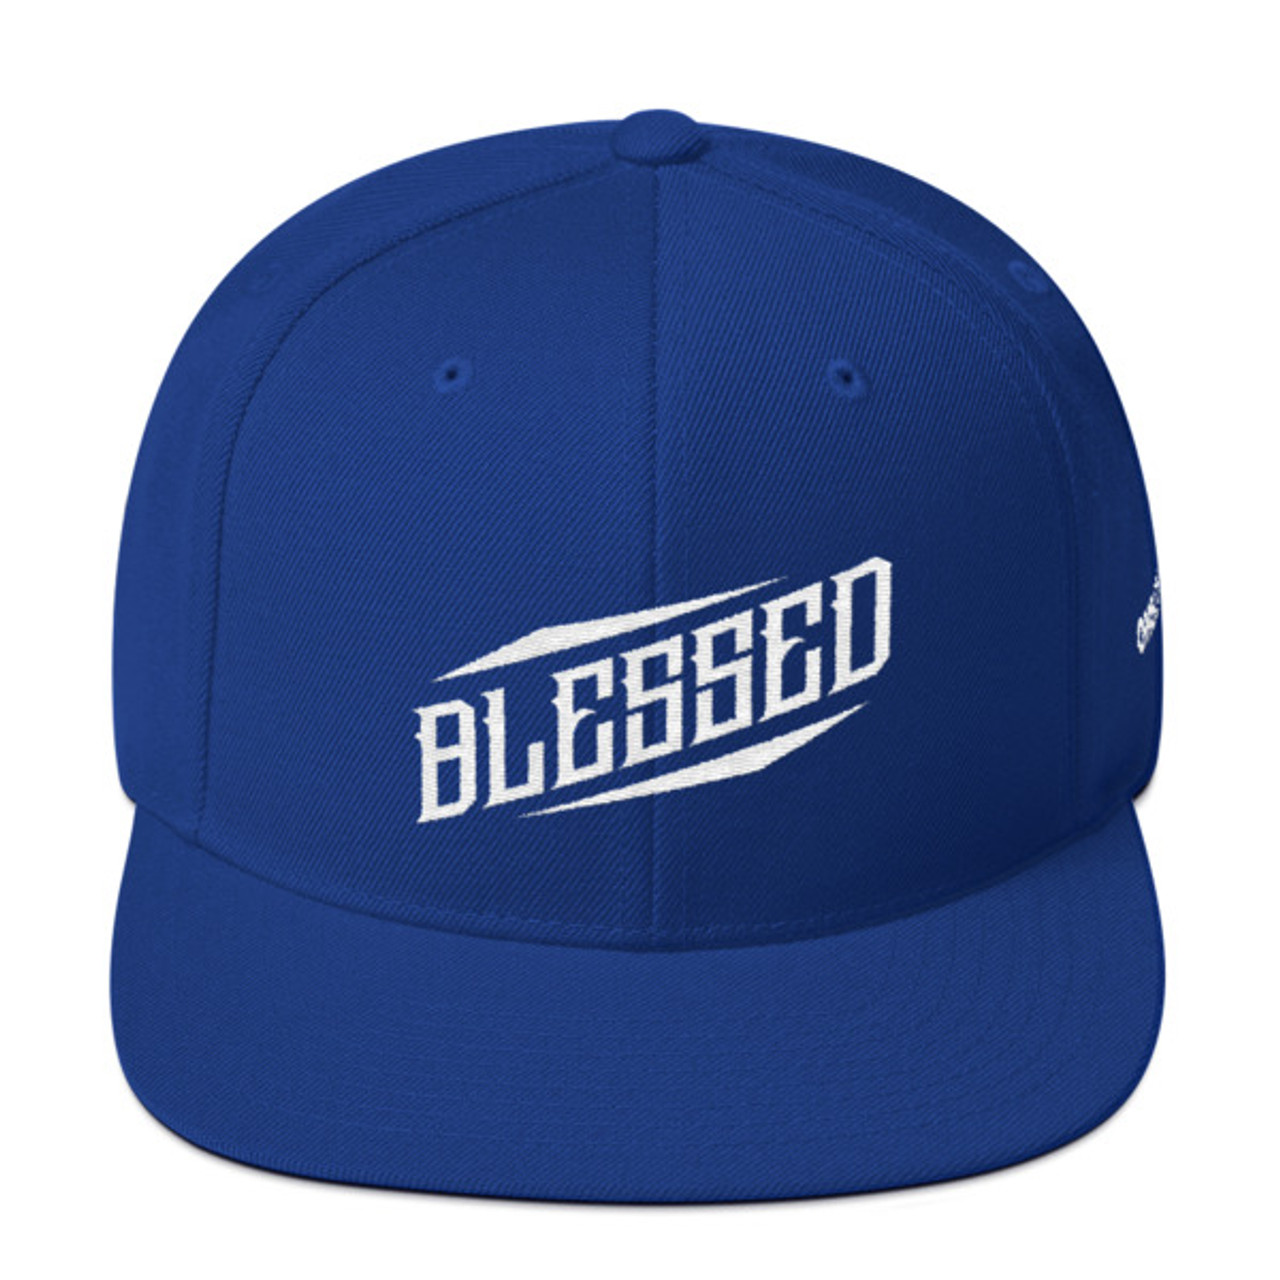 Blessed - Snapback Hat